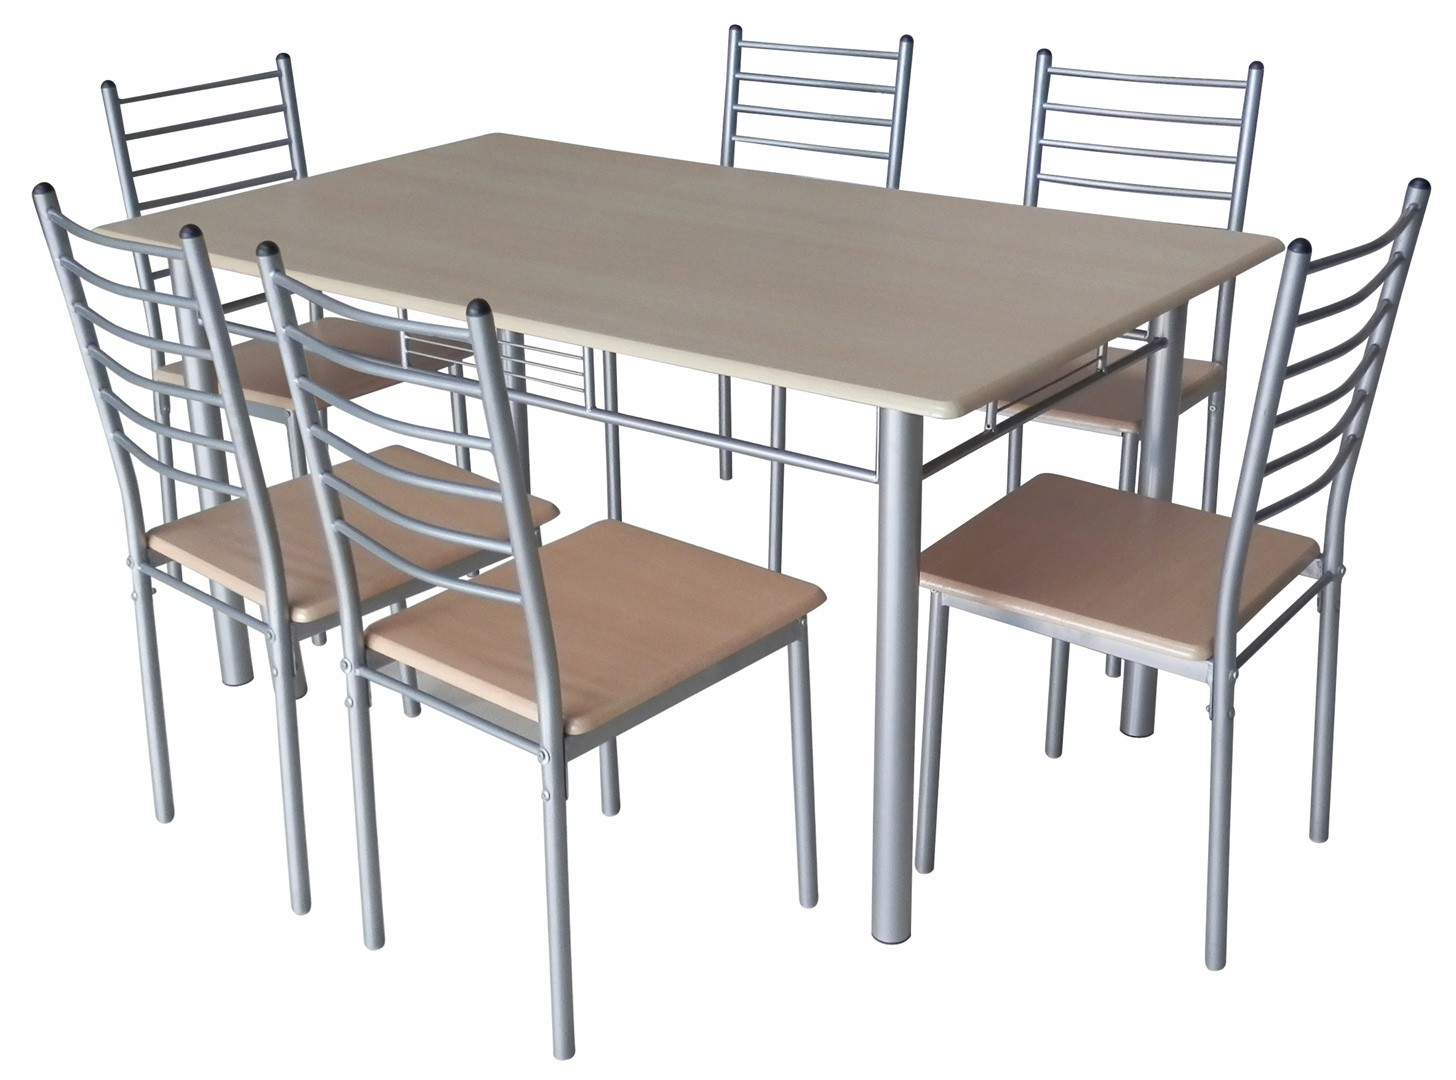 Ensemble table et chaises de cuisine but chaise id es de d coration de ma - Ensemble table chaise ...